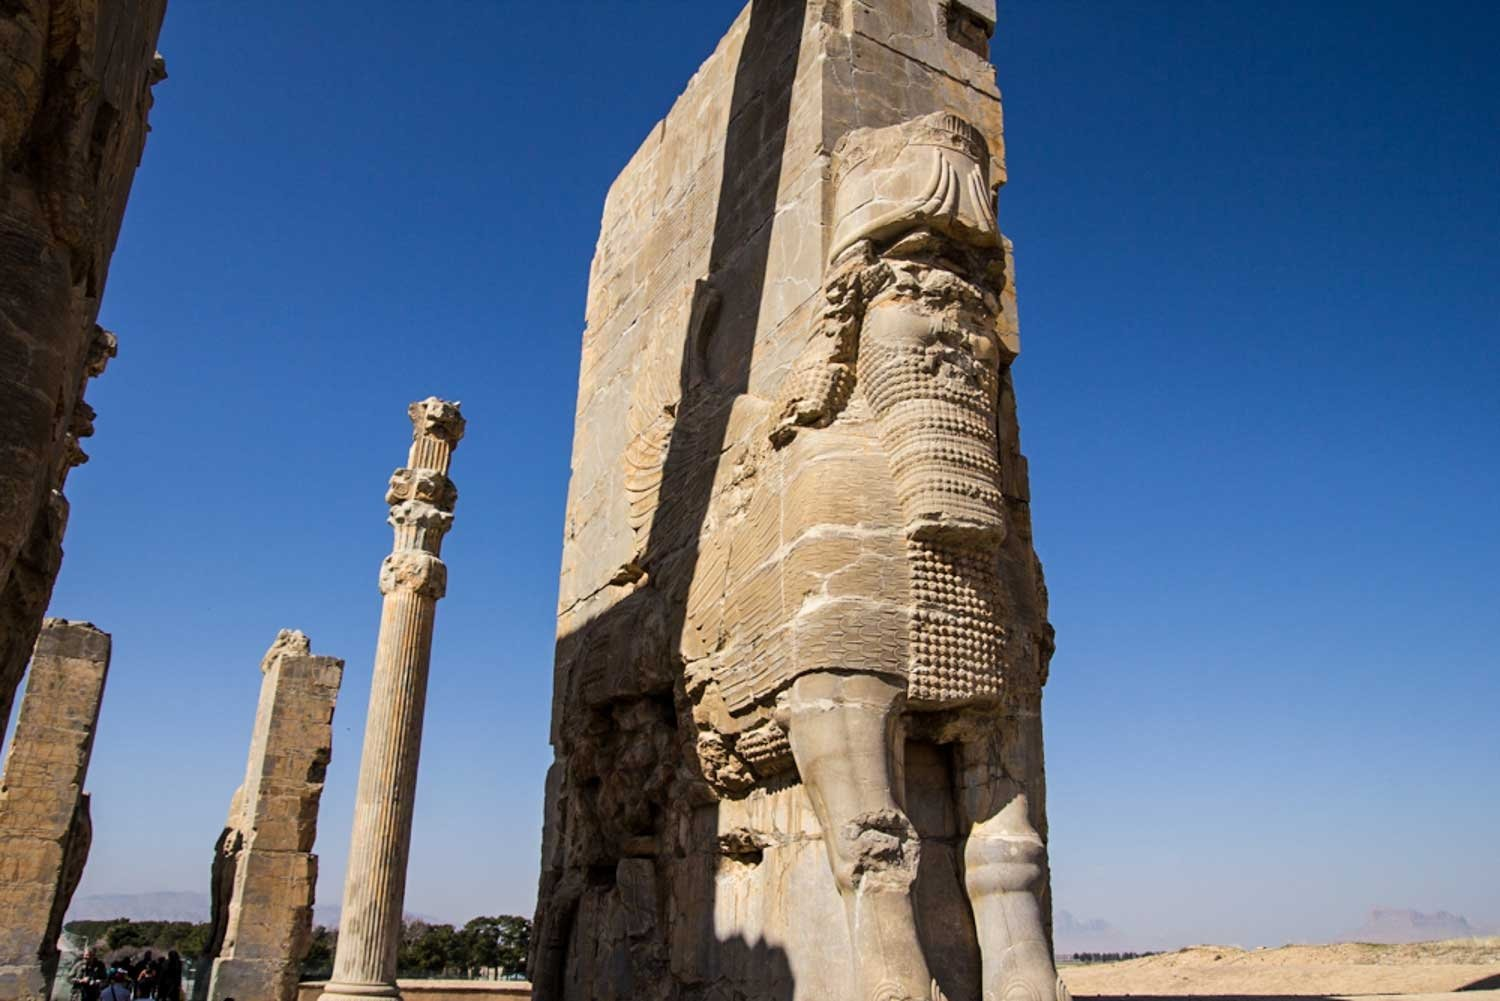 Things to see in Shiraz - Persepolis stone structure